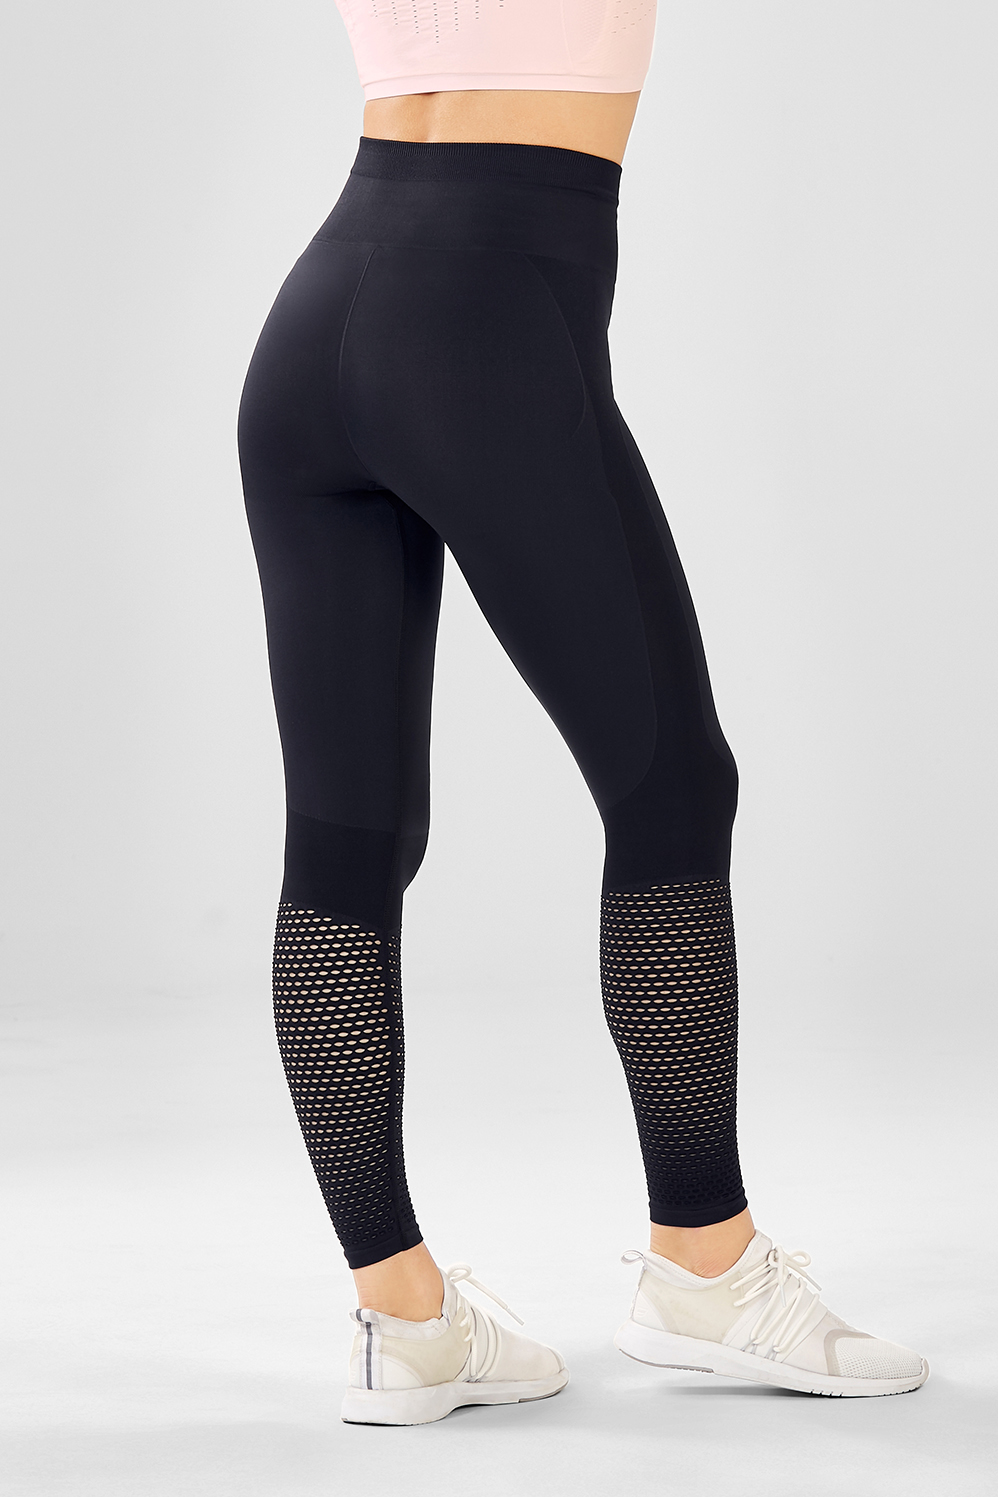 street price super popular new products for High-Waisted Seamless Mesh Leggings